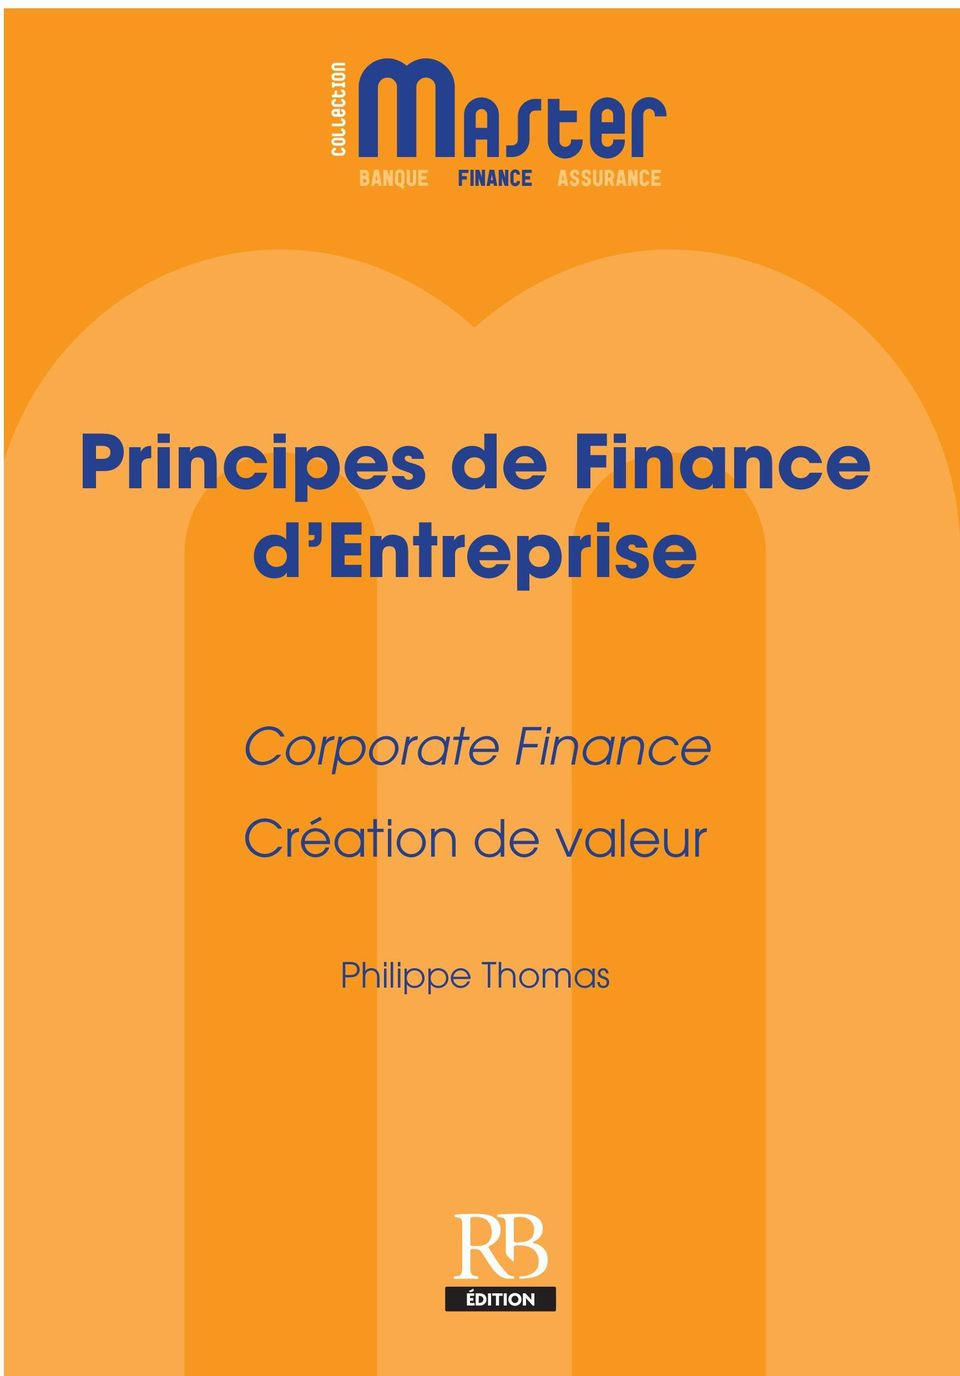 Entreprise Corporate Finance